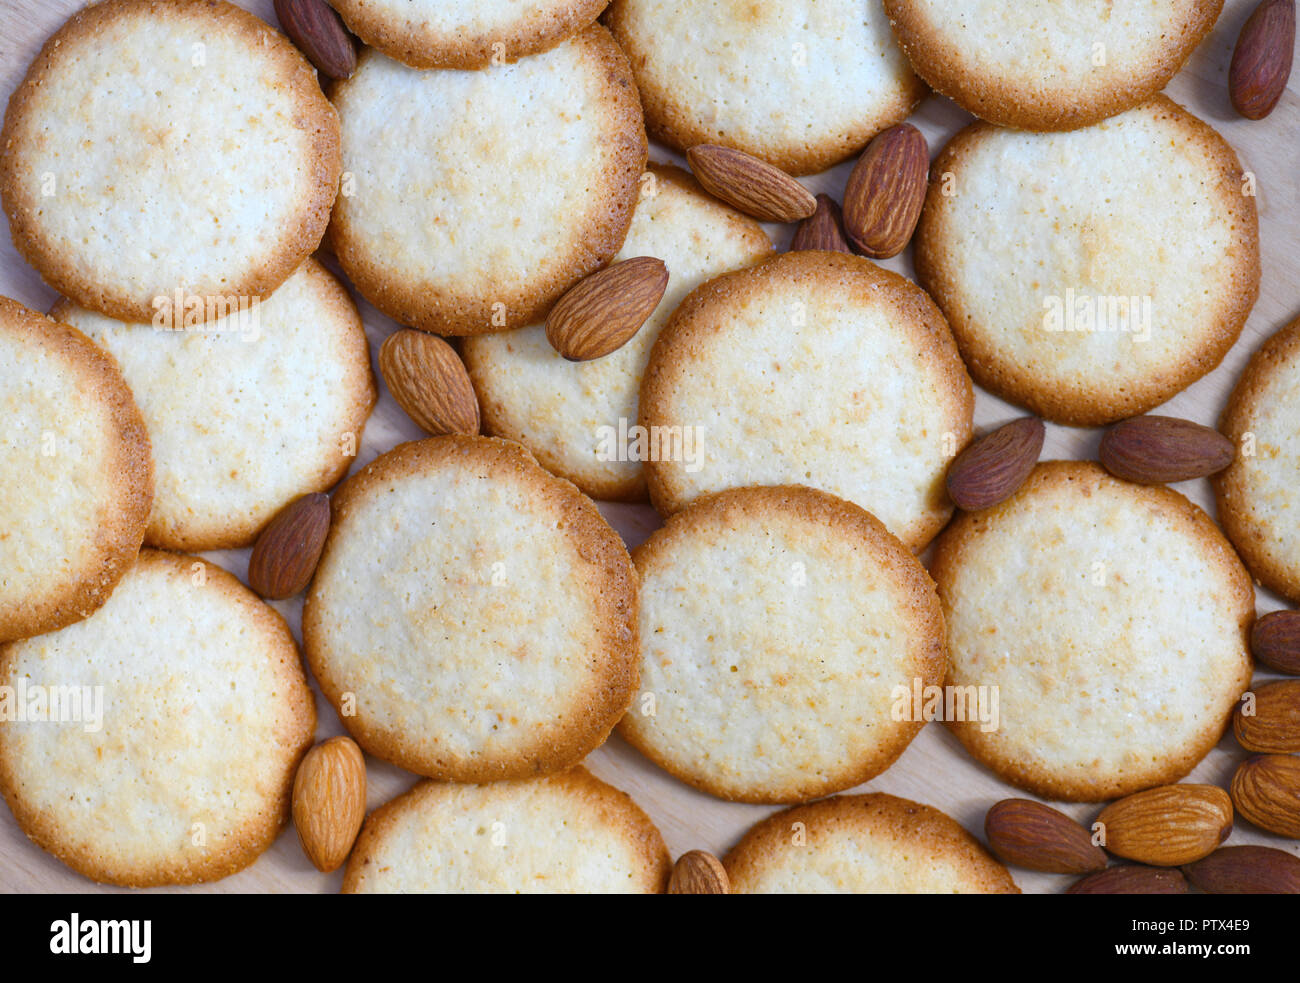 Traditional Christmas Homemade Almond Biscuits Shot As A Food